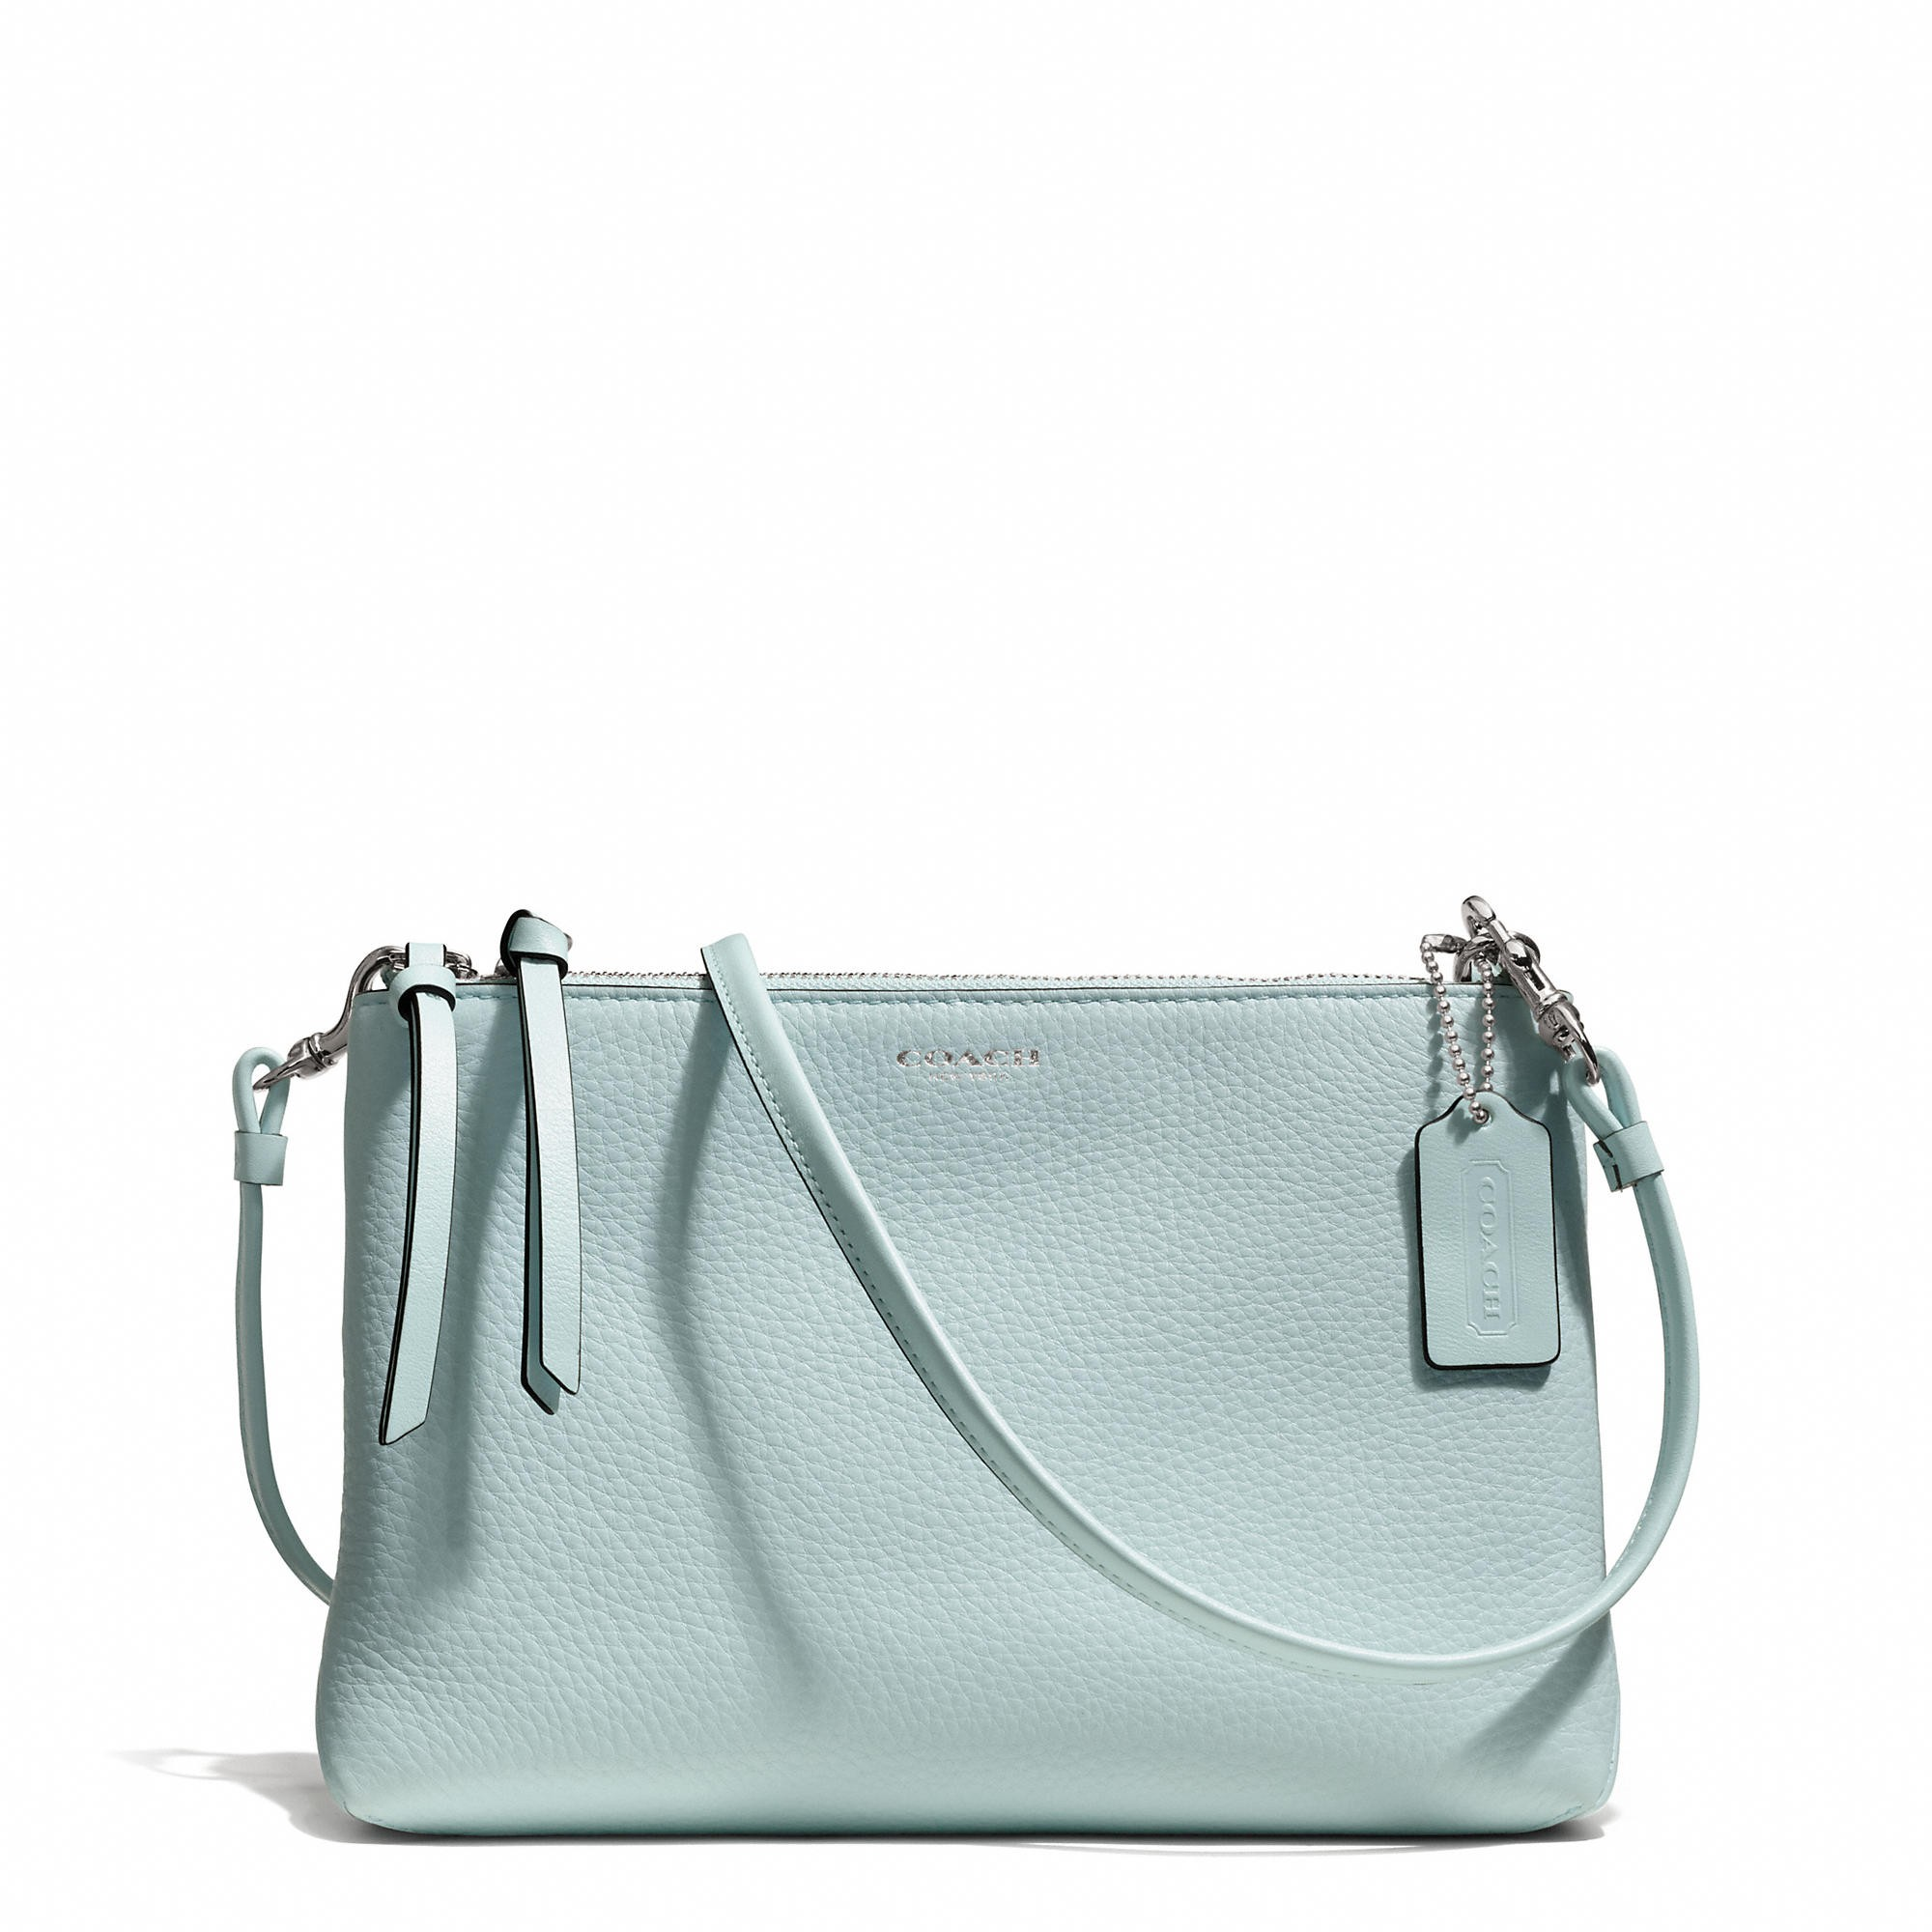 BLEECKER TRIPLE ZIP CROSSBODY IN PEBBLED LEATHER